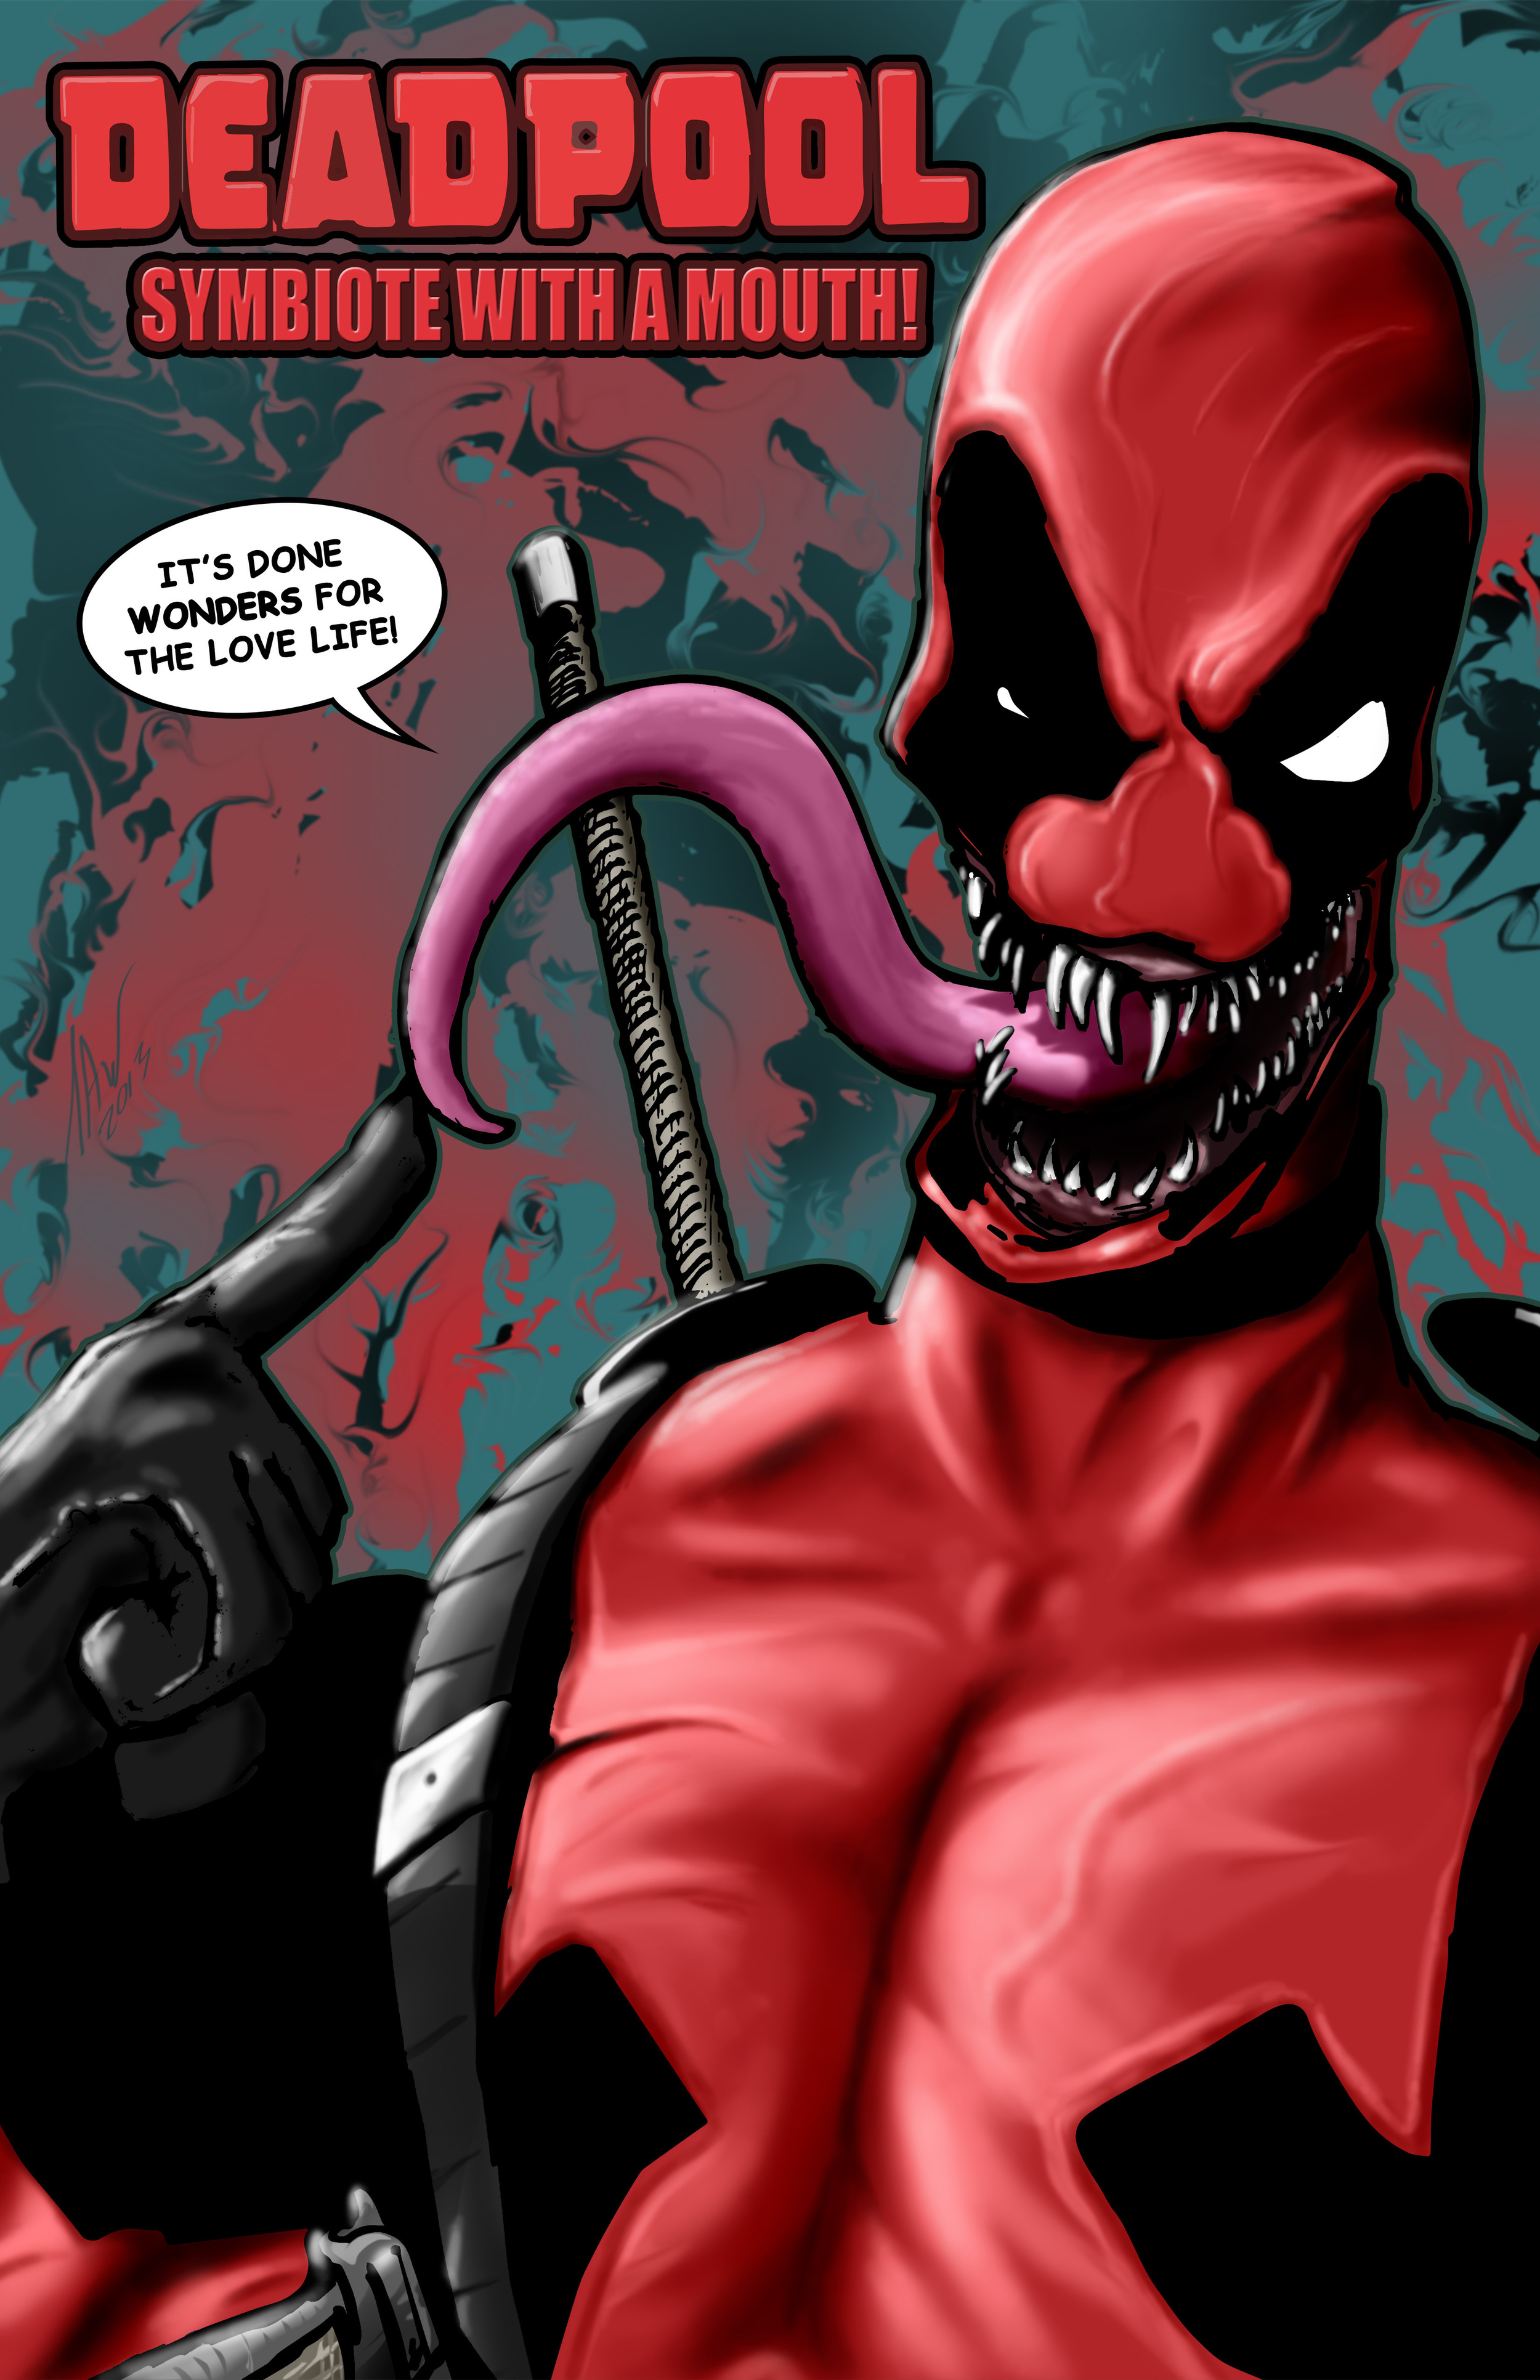 Deadpool-Symbiote with a Mouth 11x17.jpg